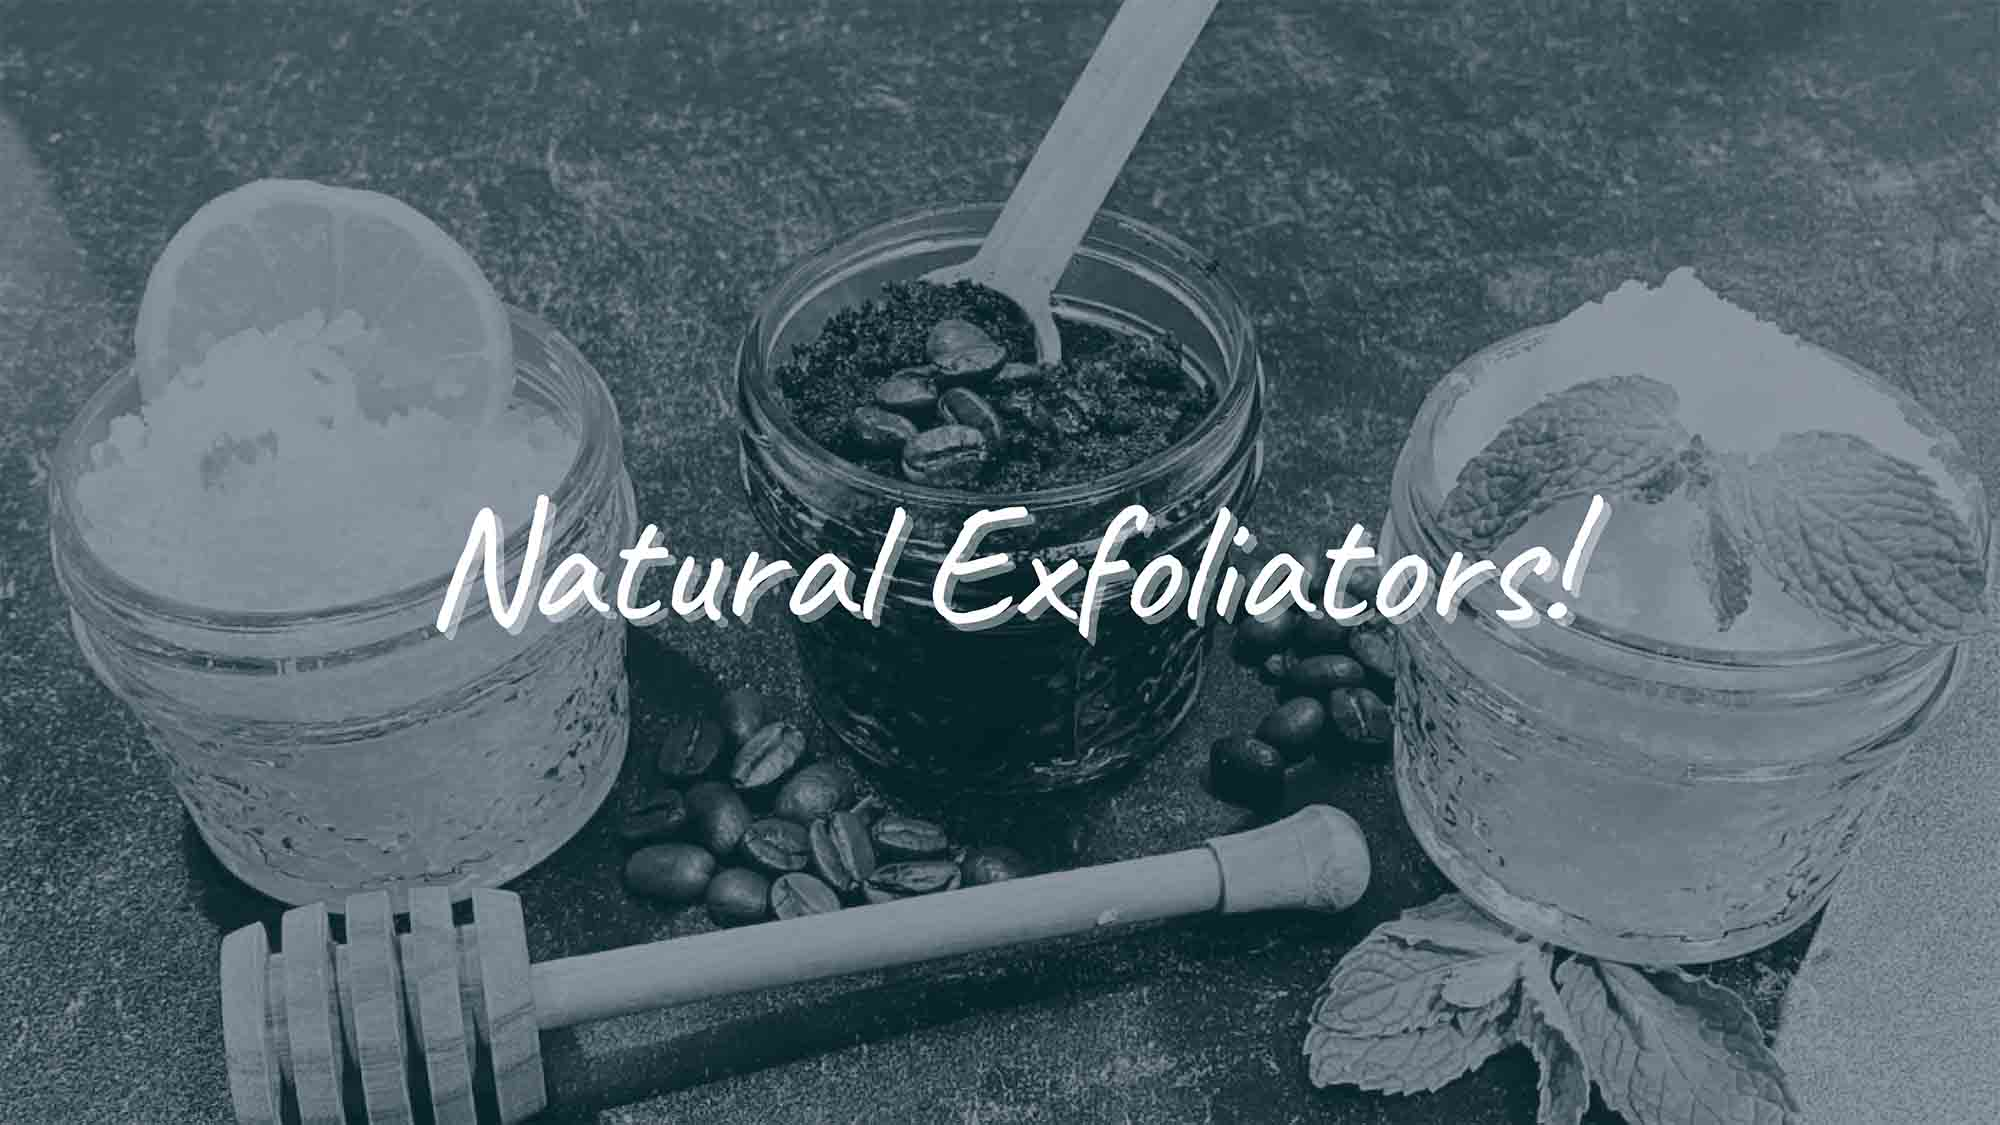 Natural Exfoliators - Underglow Skin